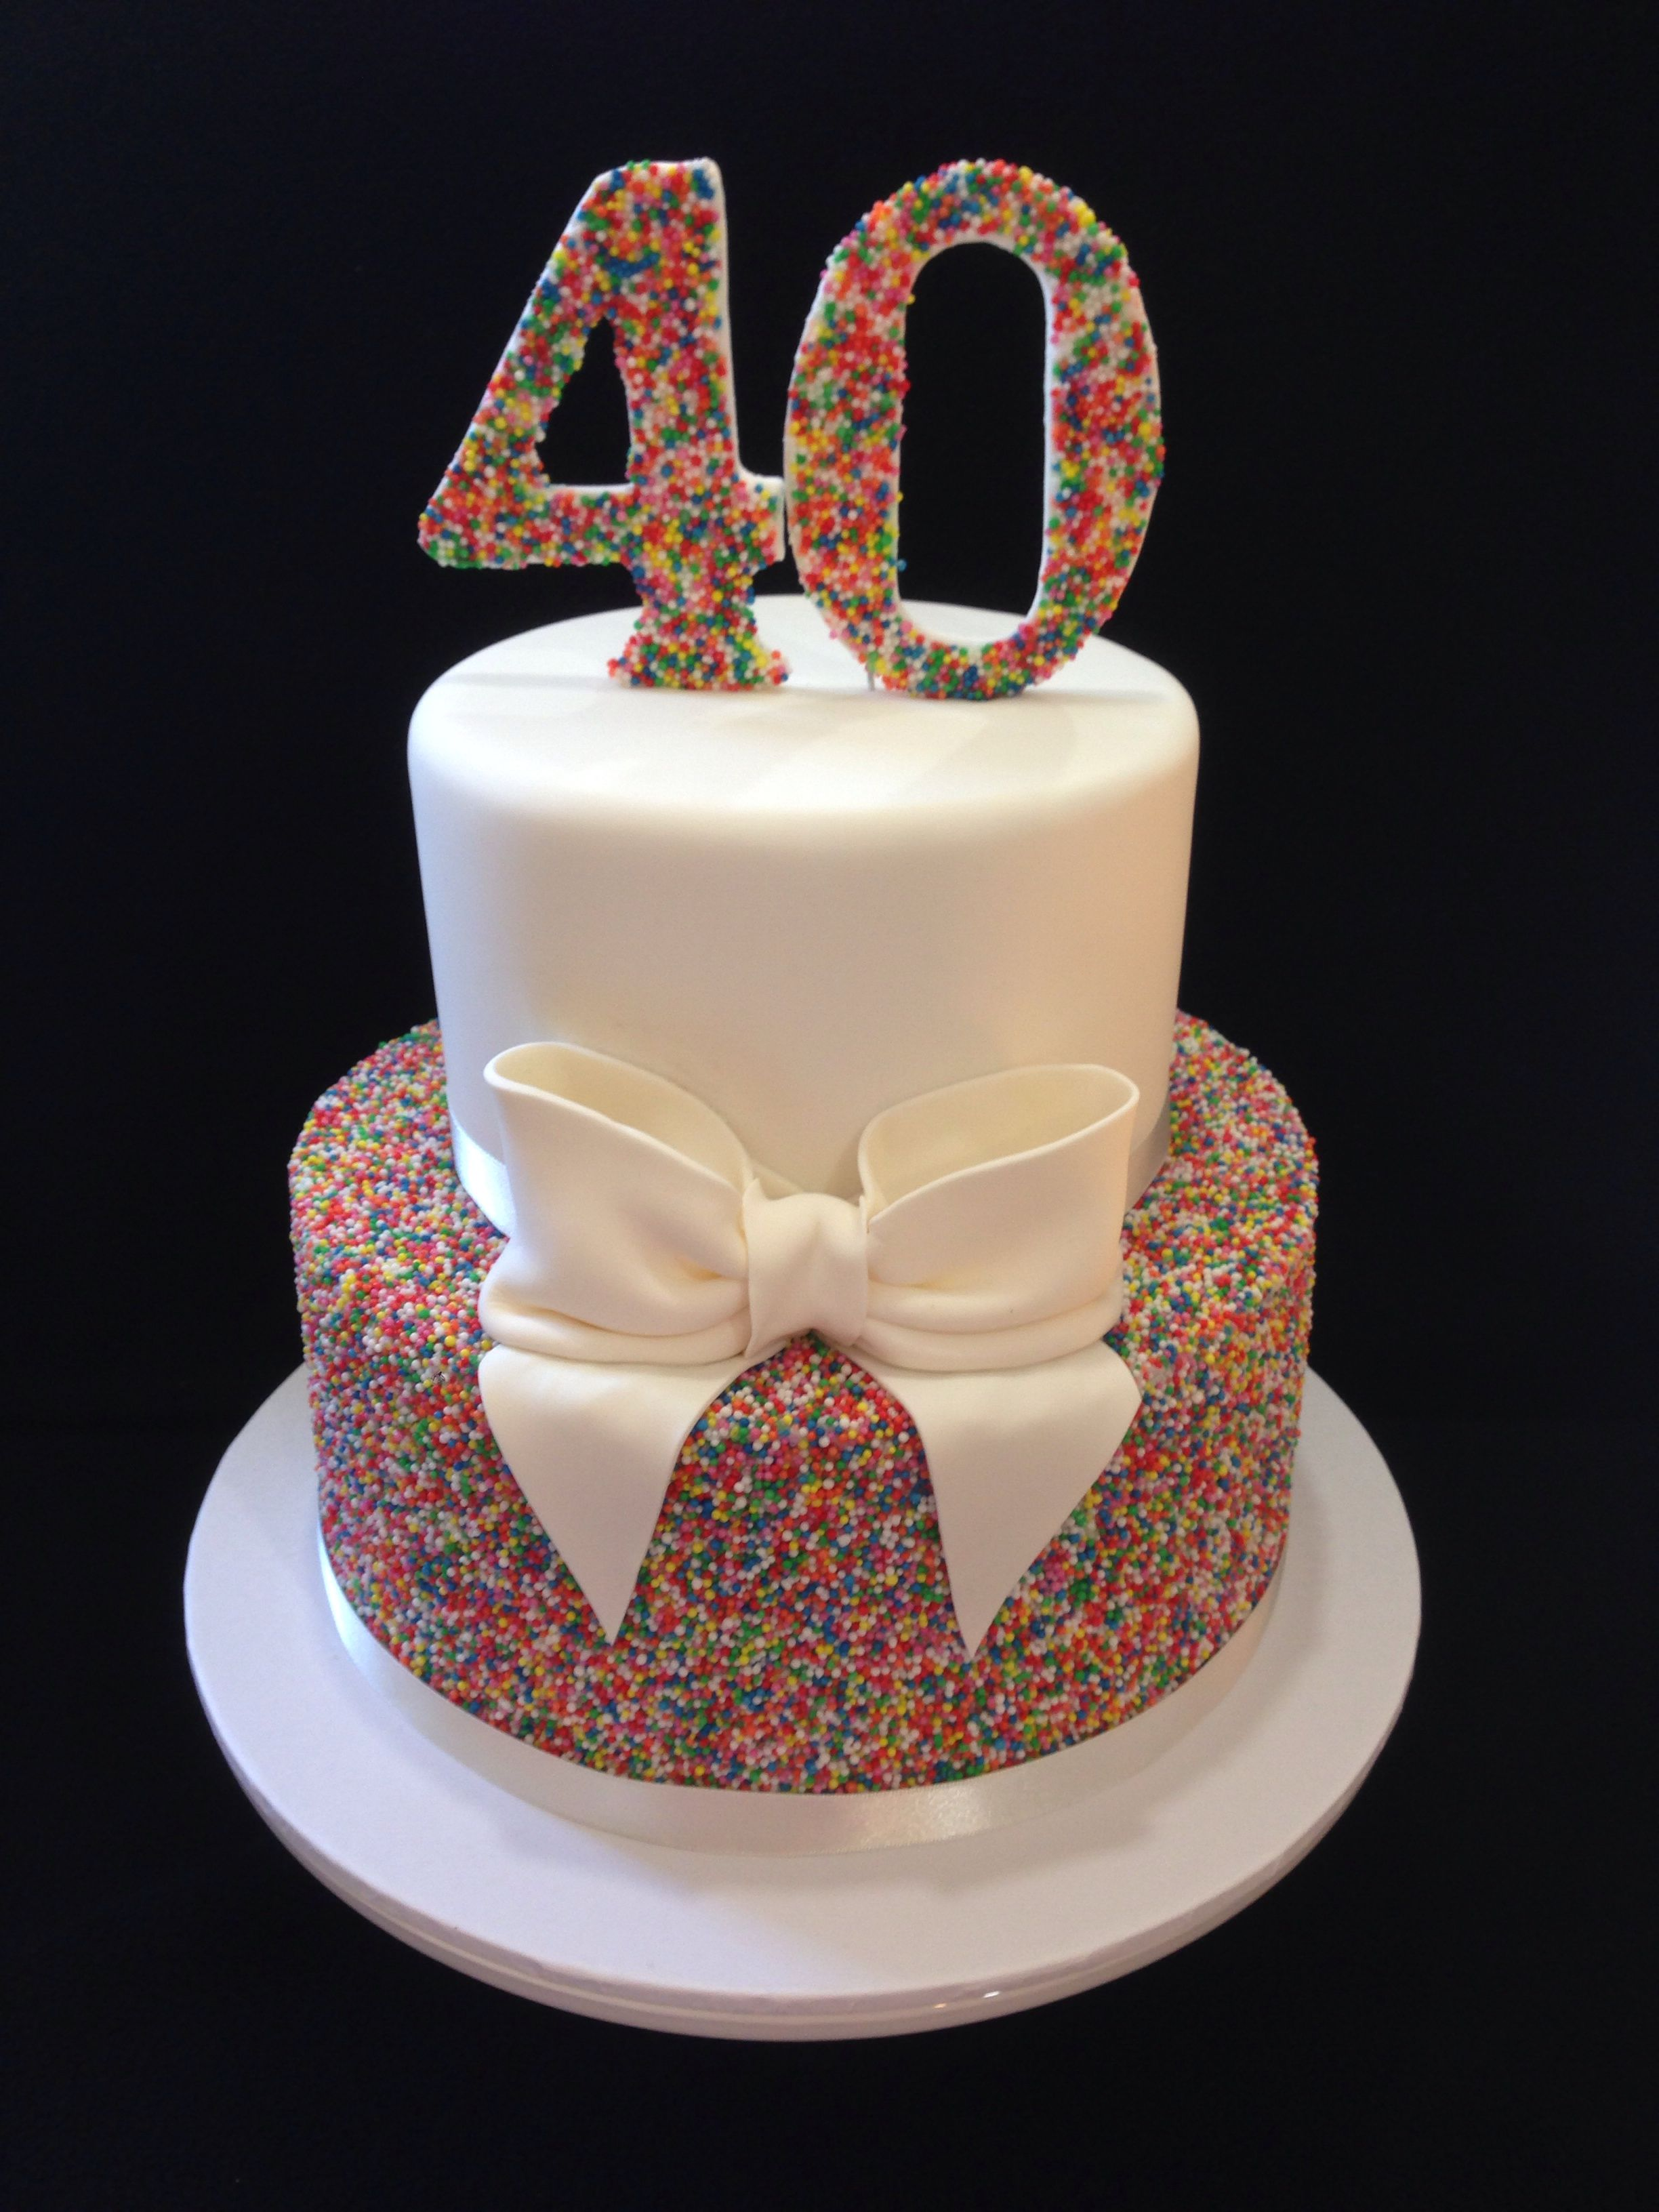 40th Birthday Cake 100s 1000s Love This Look Hundreds And Thousands Made By Sweetsbysuzie Melbourne